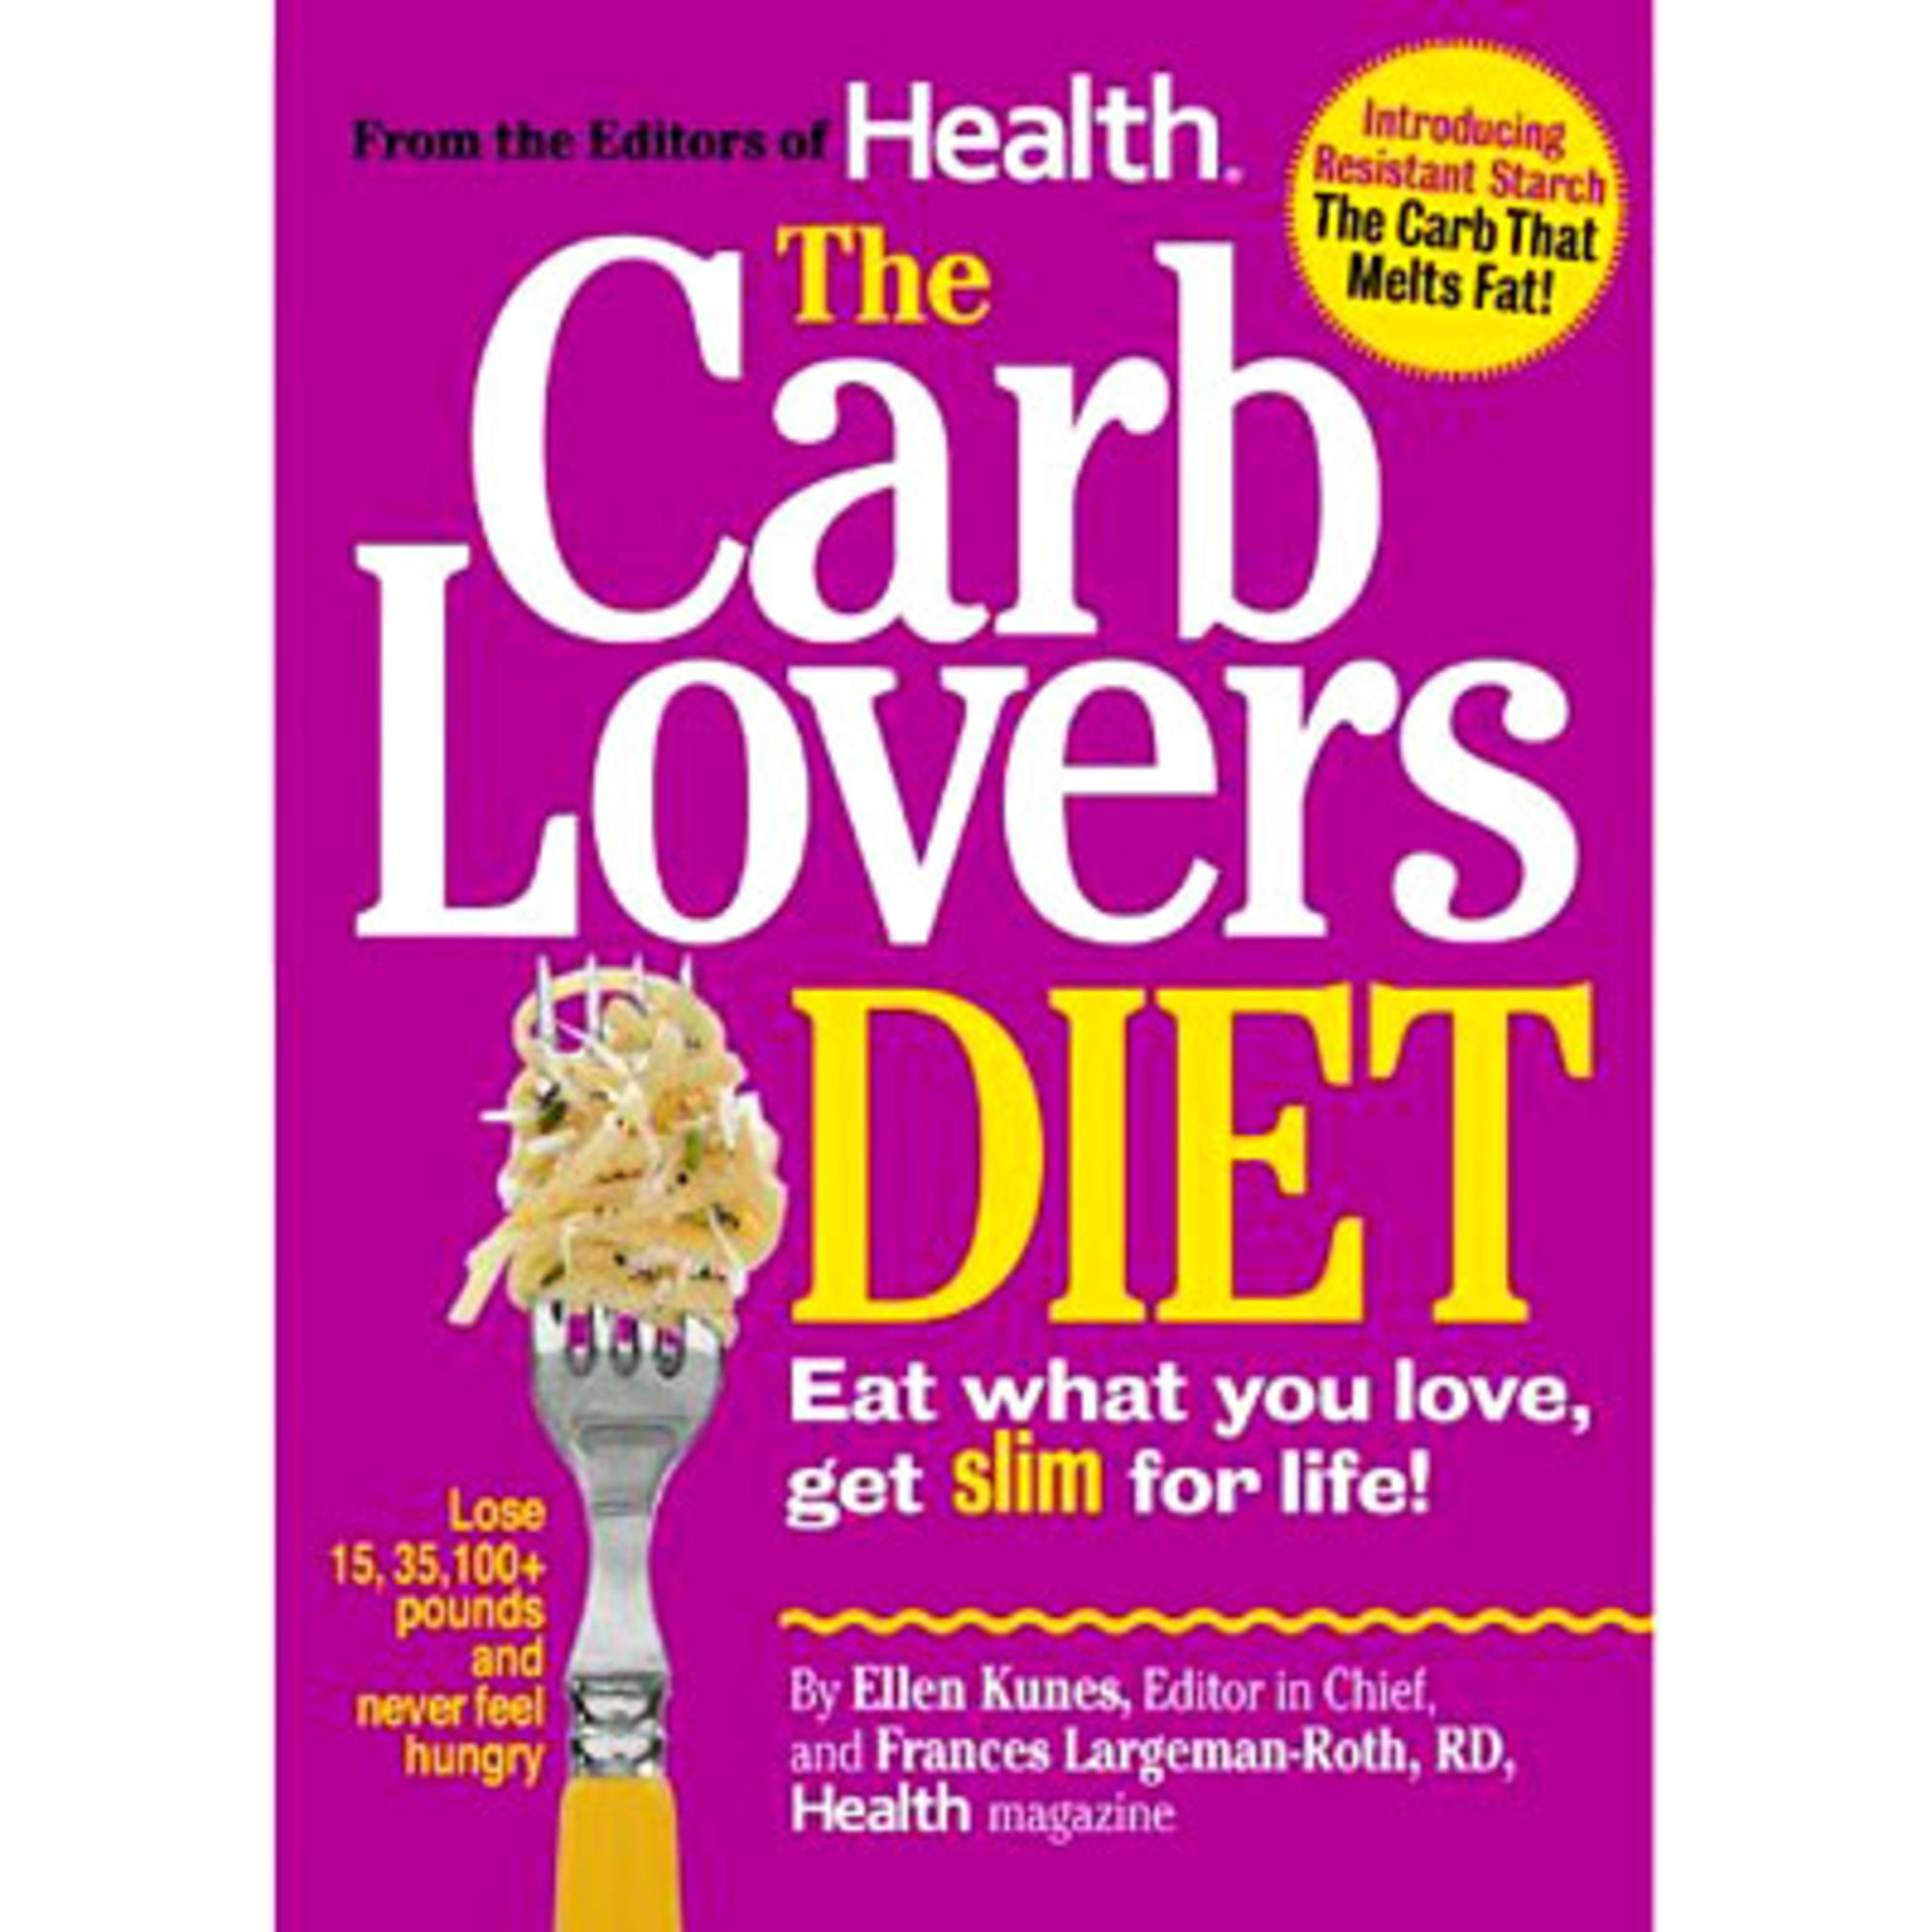 view all 11 women who lost weight on the carblovers diet